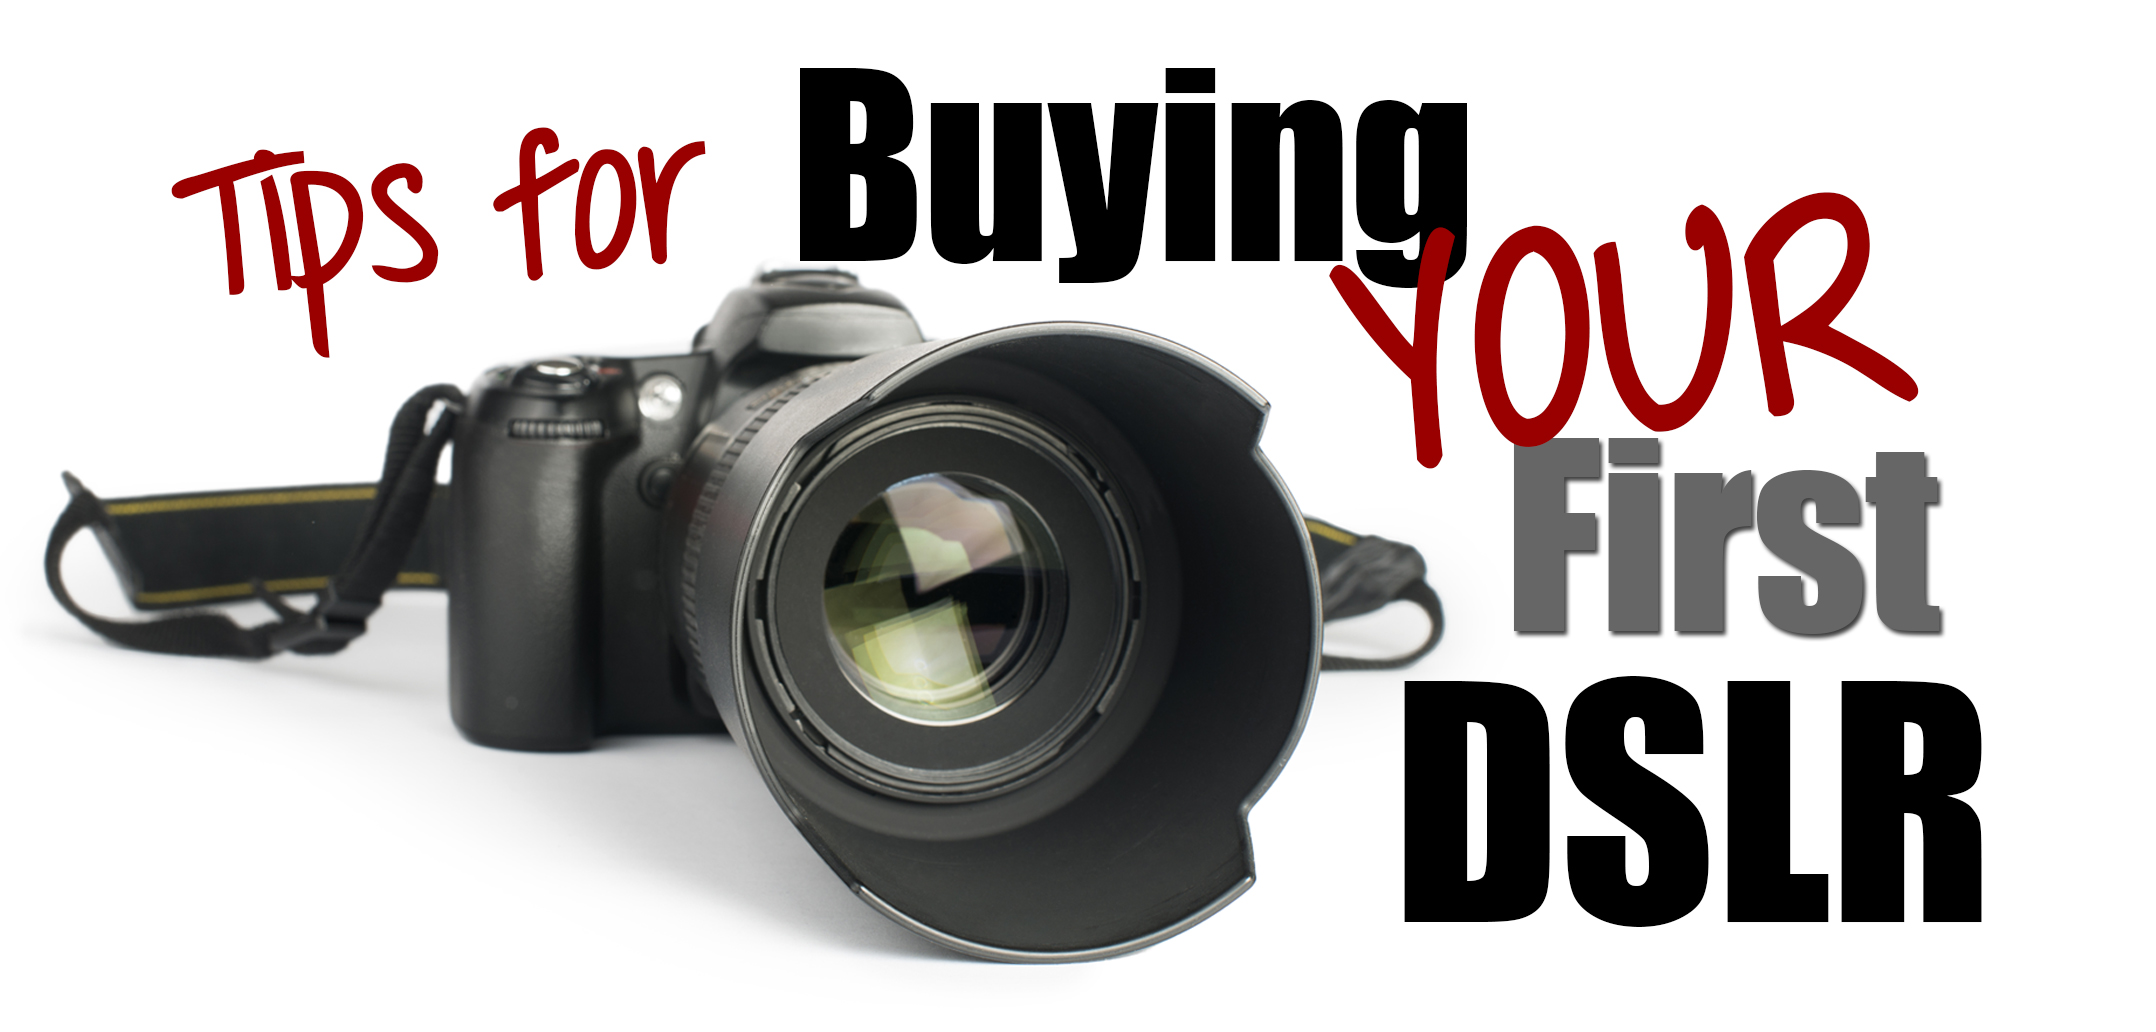 Camera Buying Dslr Camera Tips thinking of buying your first dslr camera on3legs hdr camera